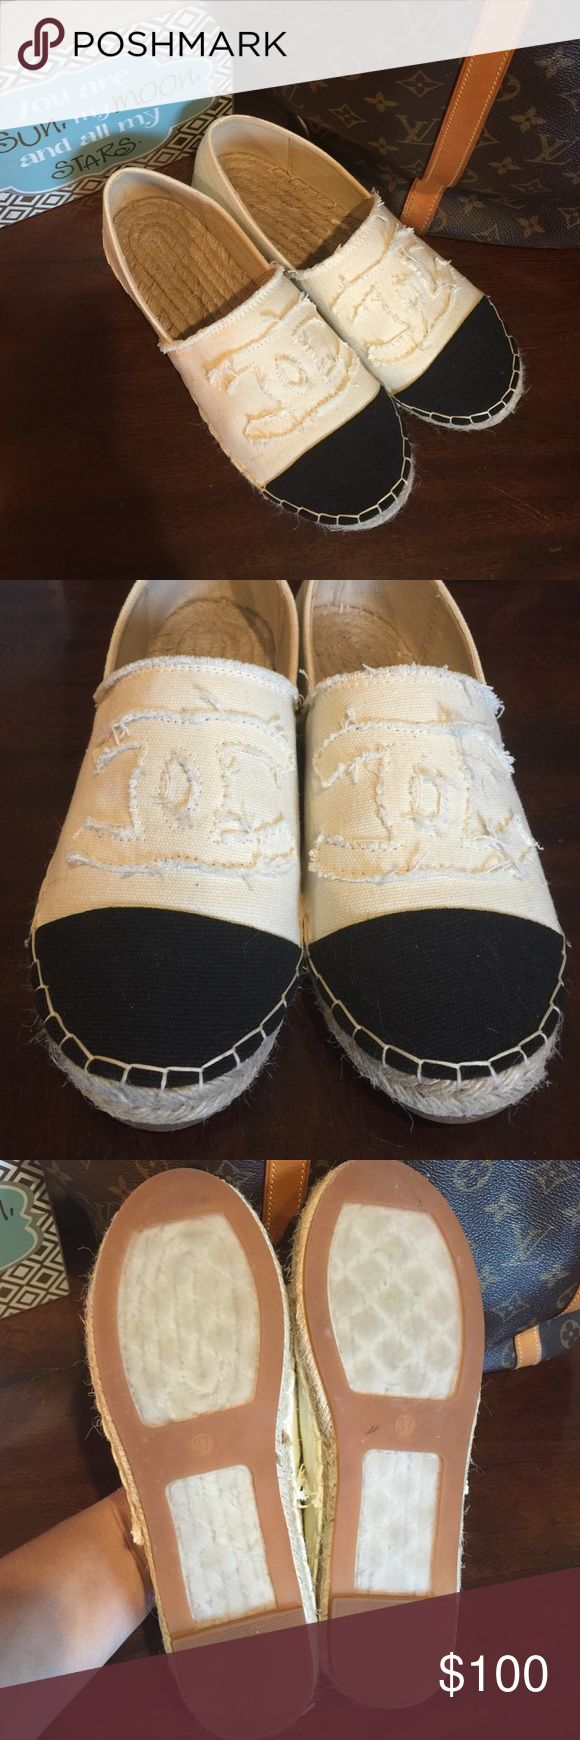 Cream/Black Espadrilles Excellent condition. Only worn twice for small periods of time. Off white and black. Size 37 on the sole but they fit like true 6/6.5. They look like the Chanel espadrilles but they aren't. Reasonable offers considered! Shoes Espadrilles